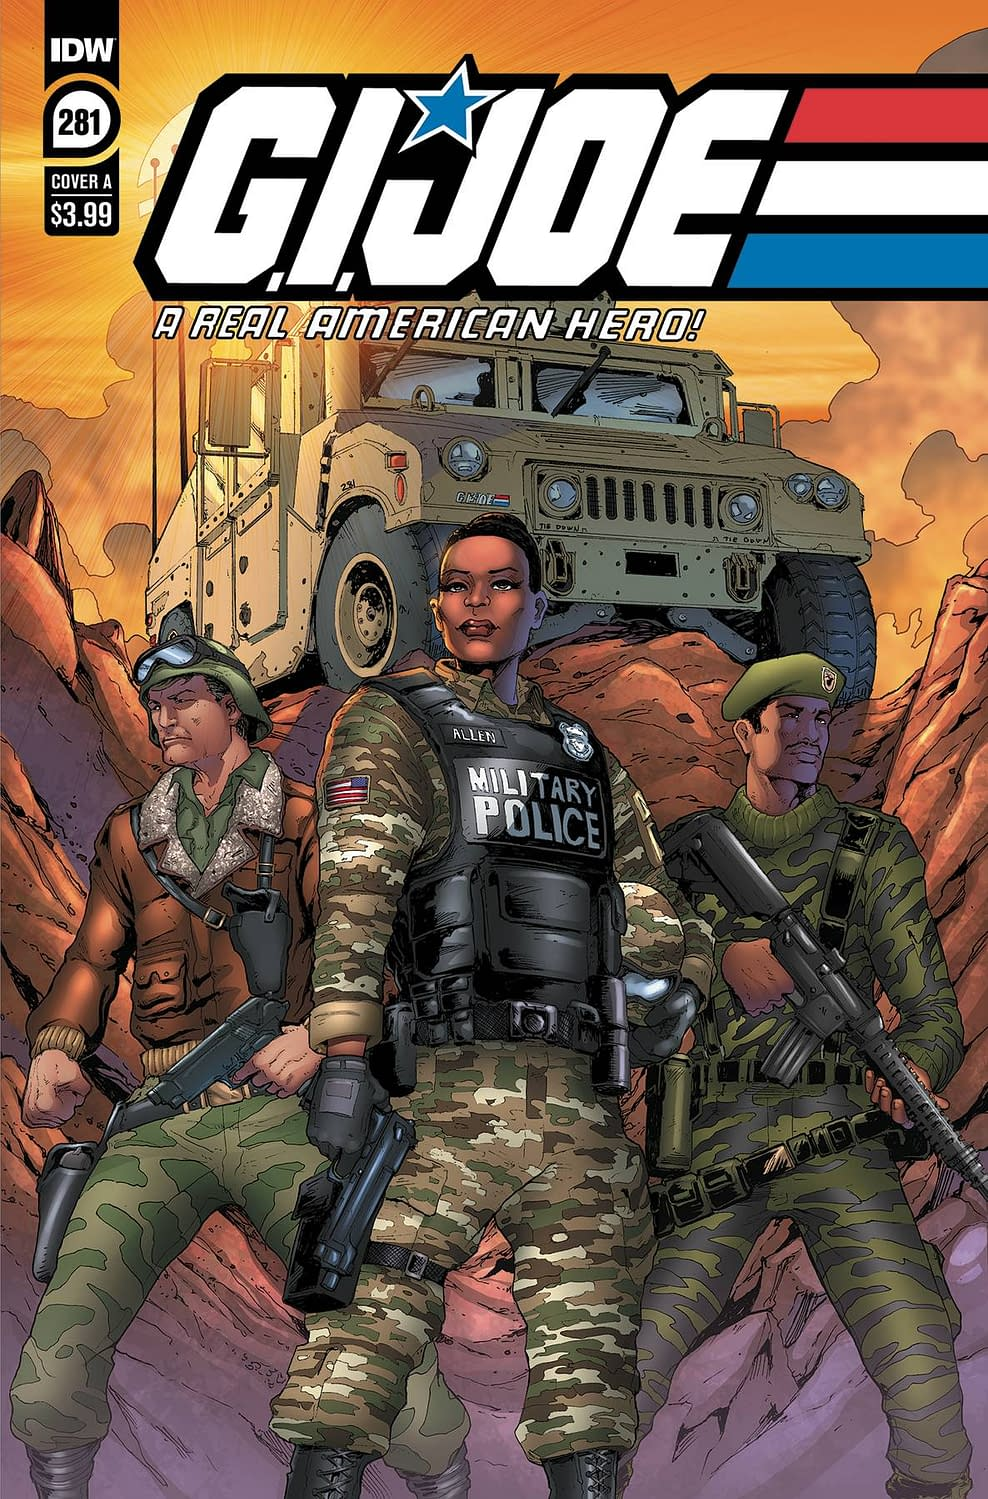 IDW Full Solicitations For March 2021 With Godzilla, Disney & GI Joe GI JOE A REAL AMERICAN HERO #281 CVR A ANDREW GRIFFITH